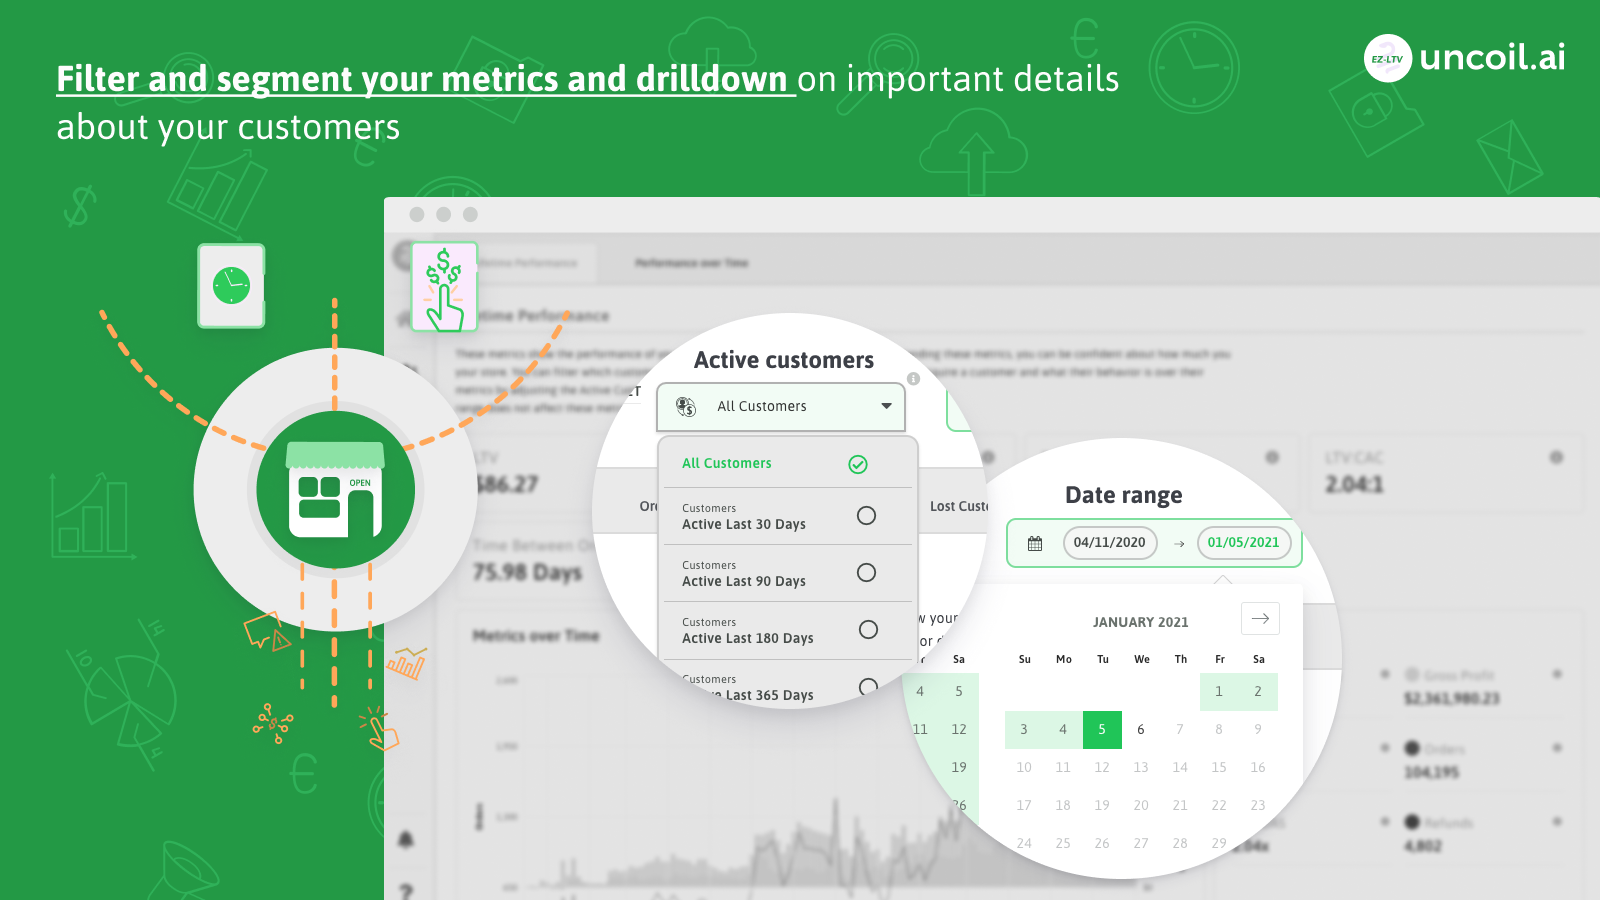 Filter and segment your metrics and drilldown on important data